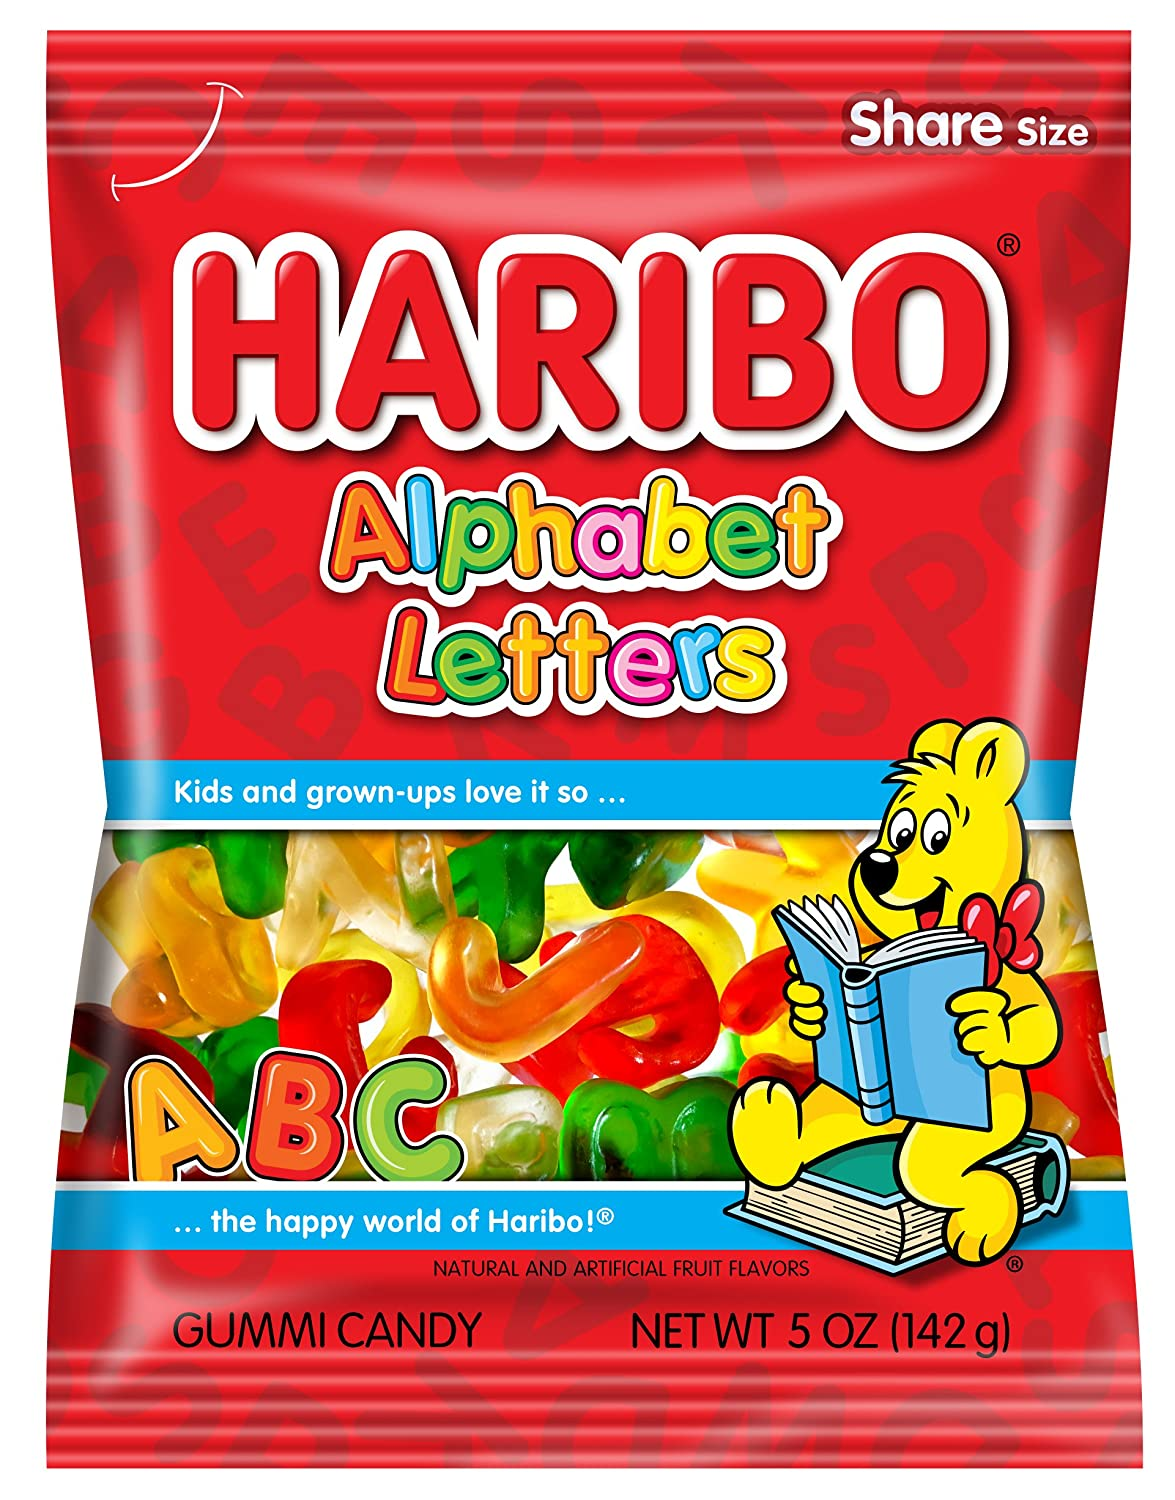 Put Down the Haribo: Sugars Affecting More Than Just Our Waistlines pics